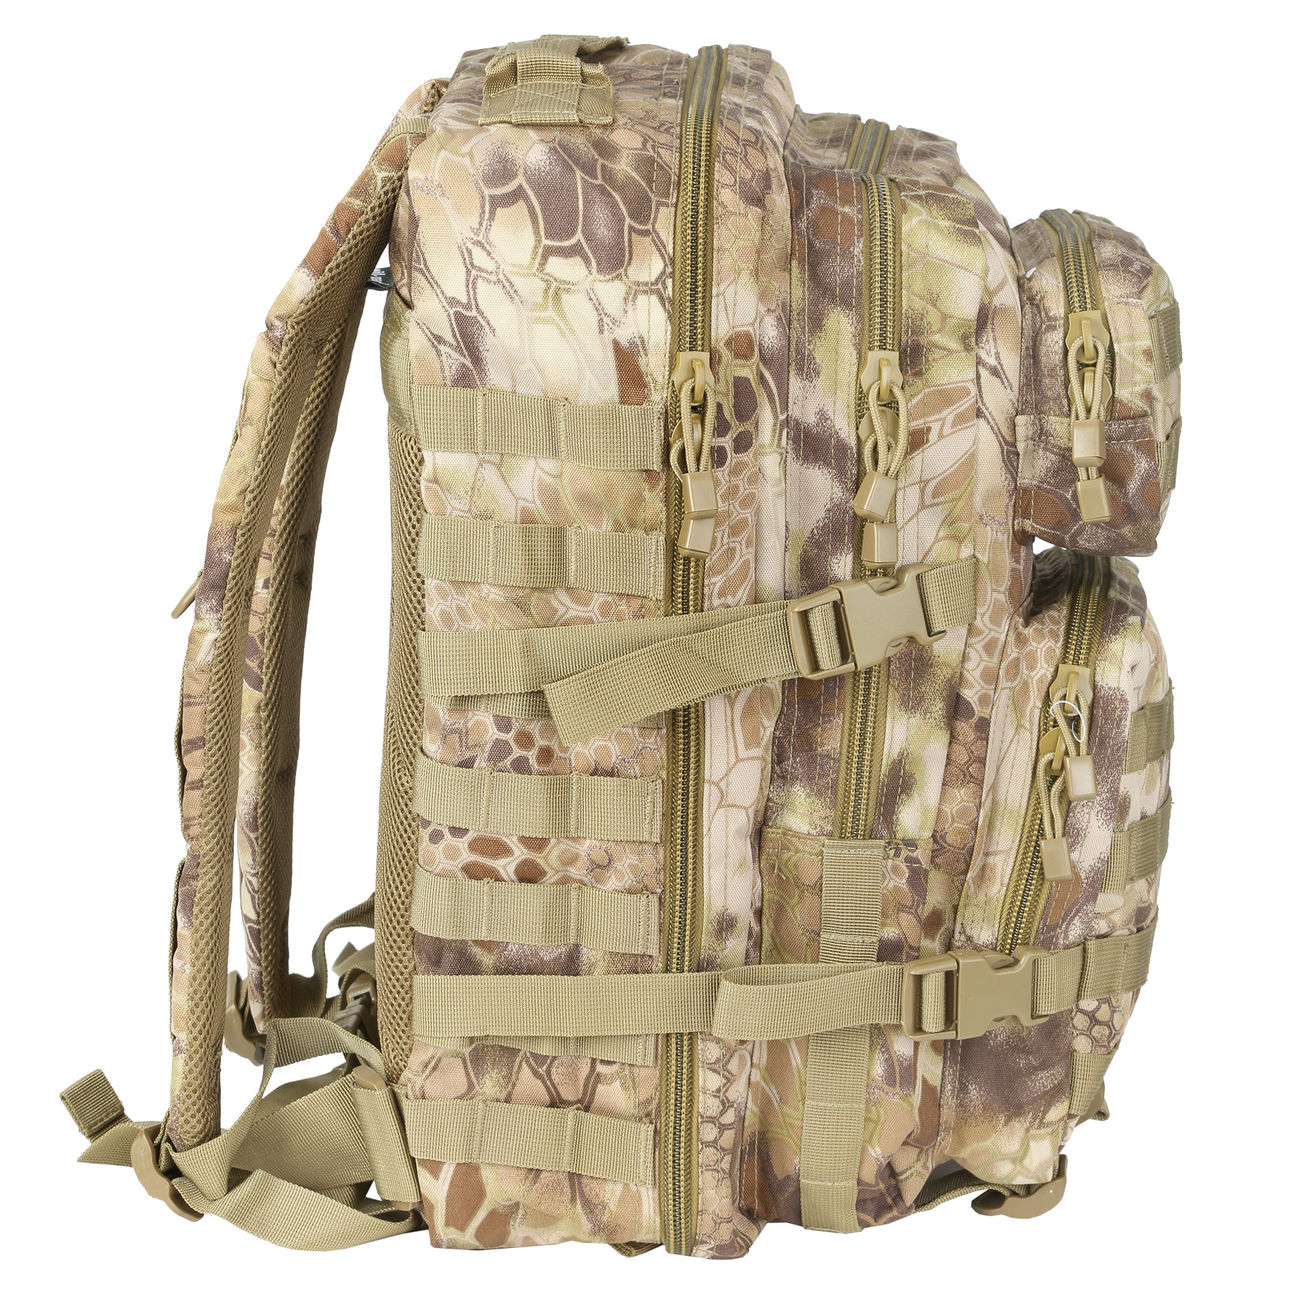 Mil-Tec Rucksack US Assault Pack II 40 Liter mandra tan 1